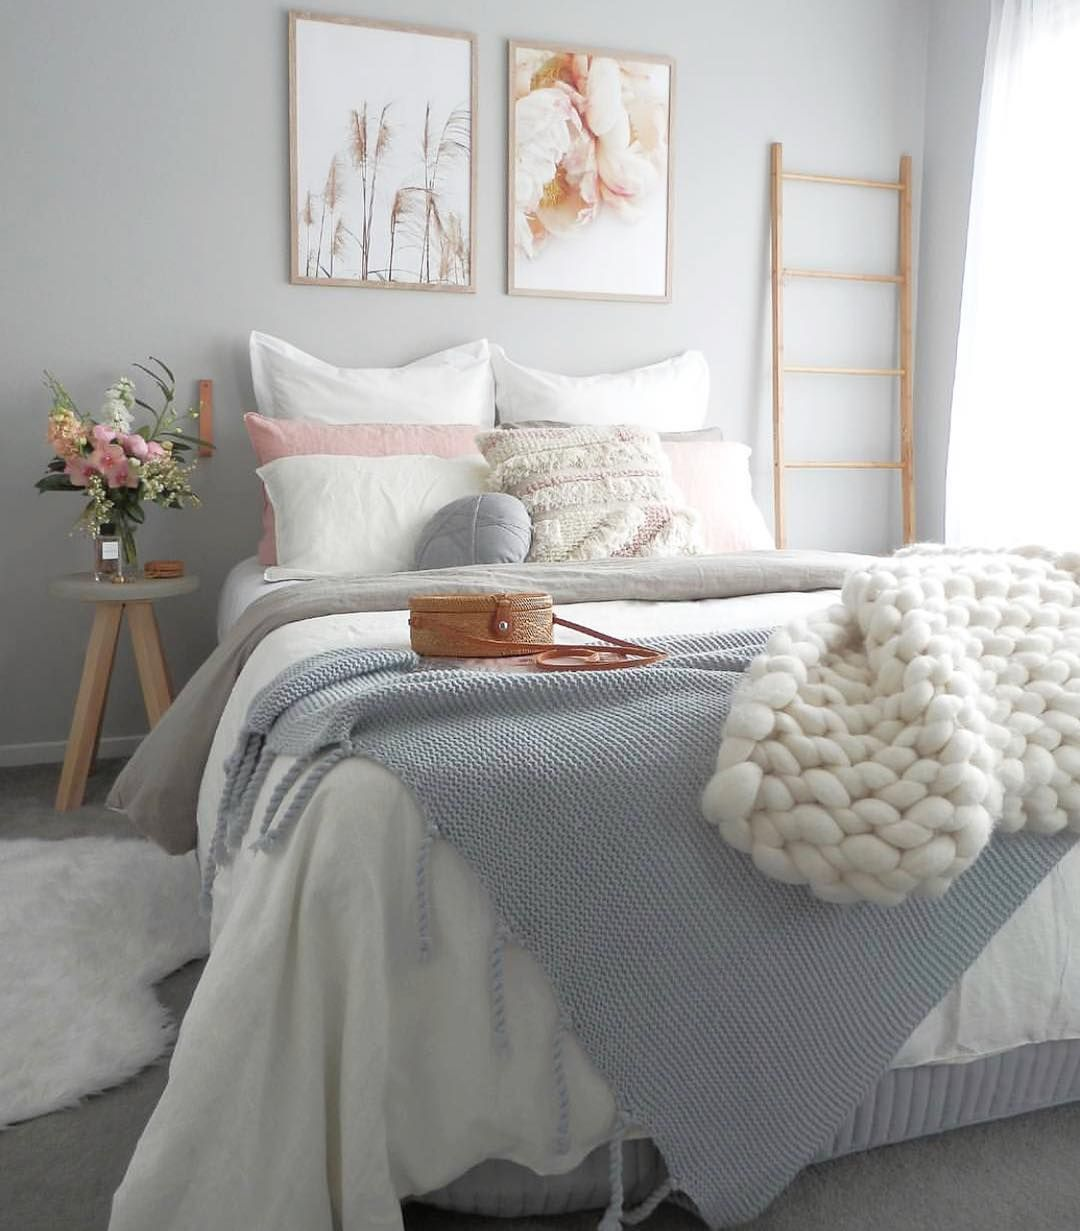 ❤ Dreamy bedrooms on Instagram • photo © @woolandwillow #bedroom ...